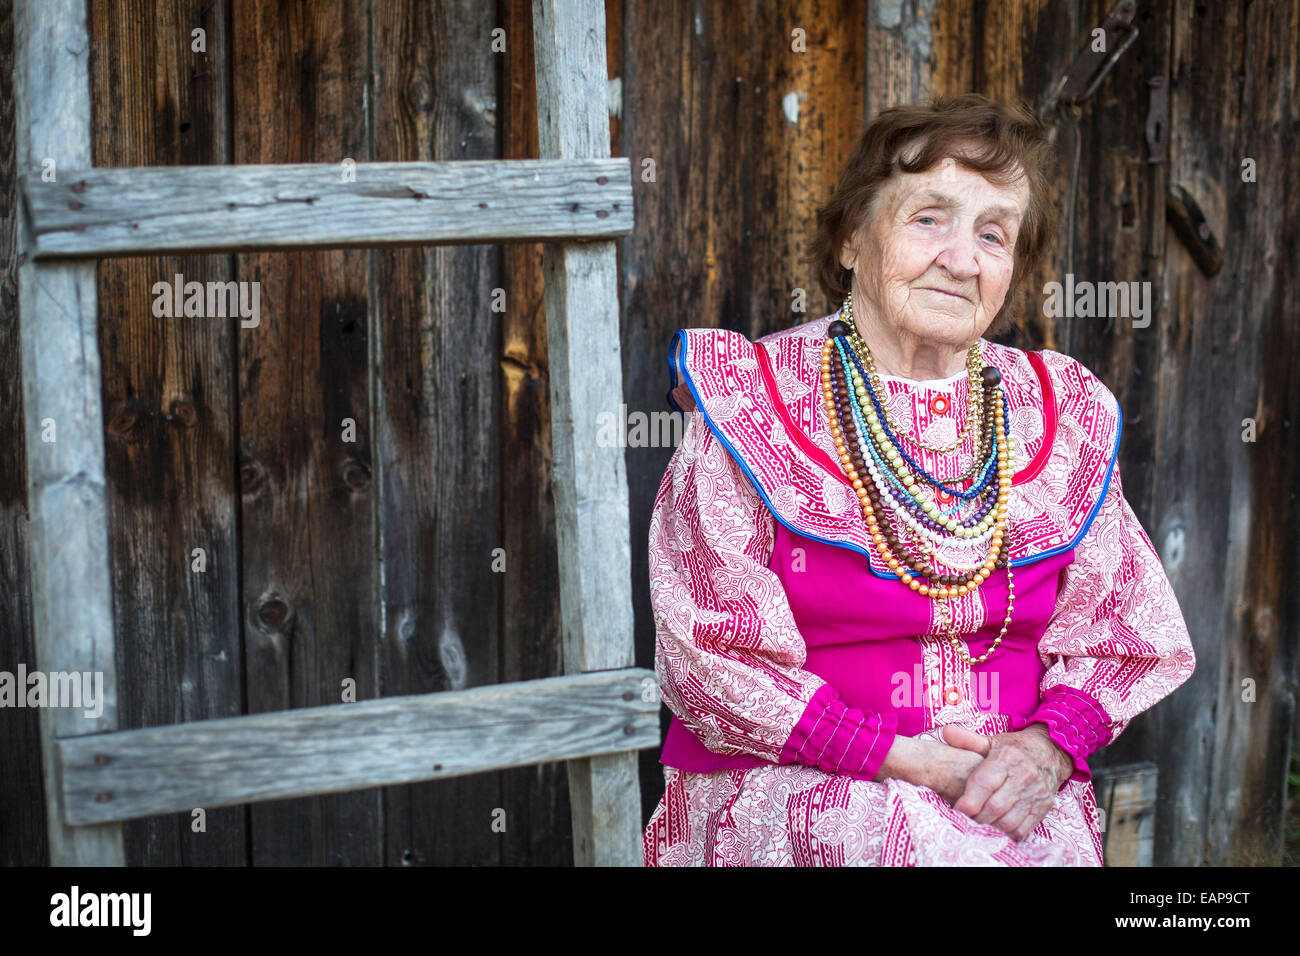 Old woman in ethnic red and white dress and necklace, outdoors in the village. - Stock Image